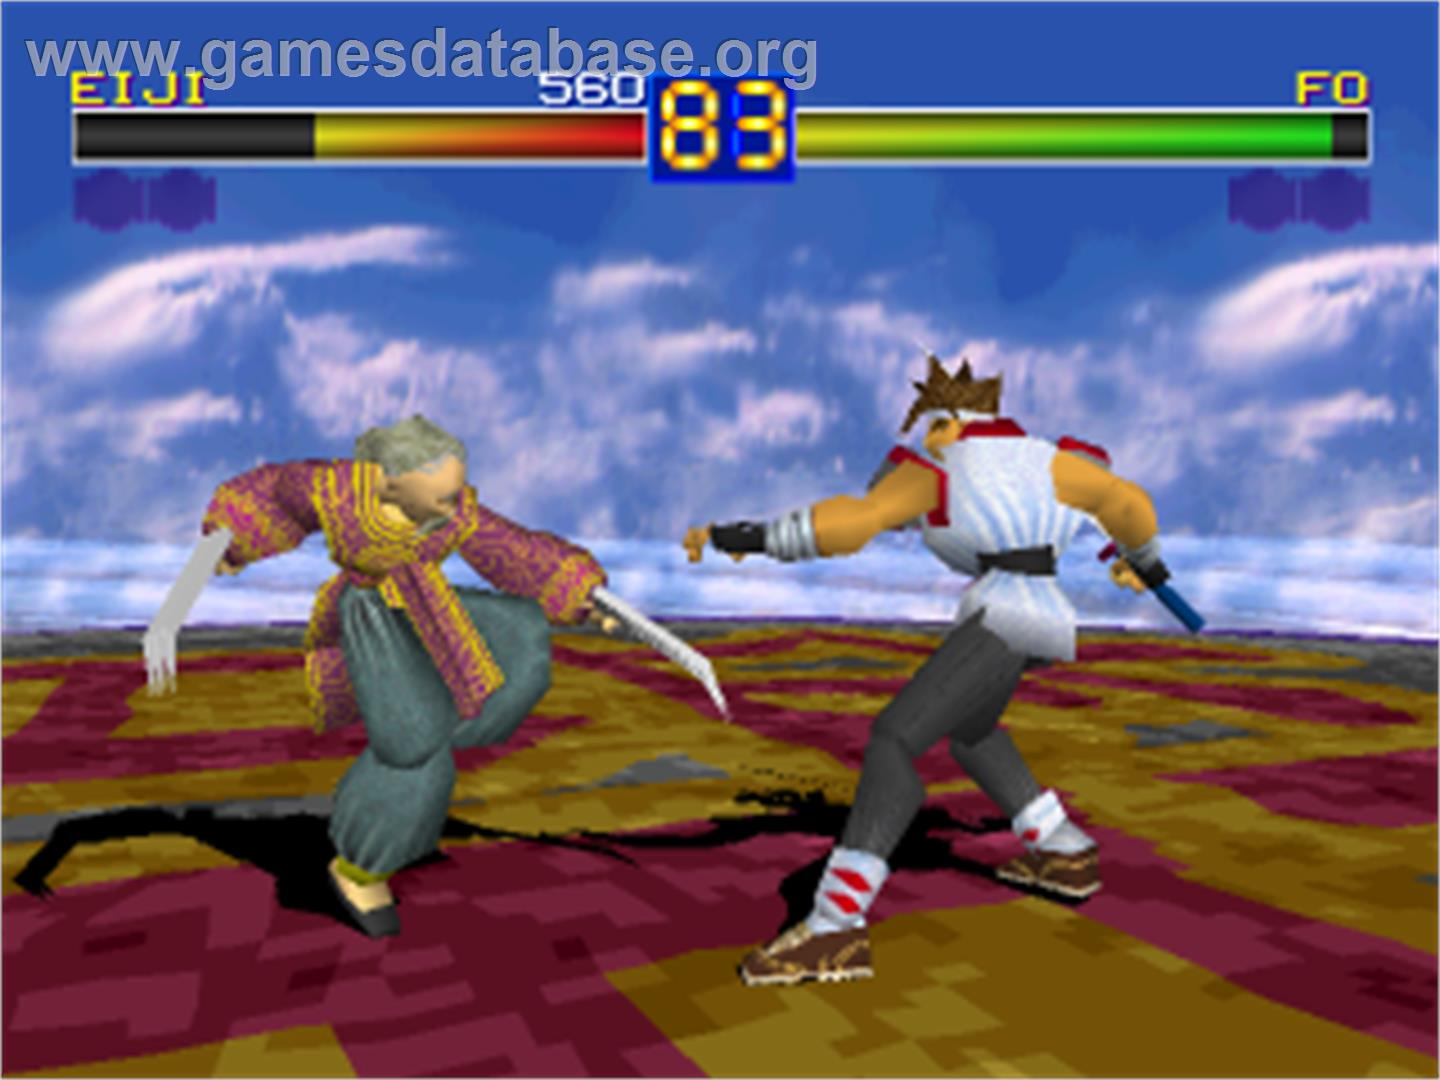 Battle Arena Toshinden - Sony Playstation - Artwork - In Game